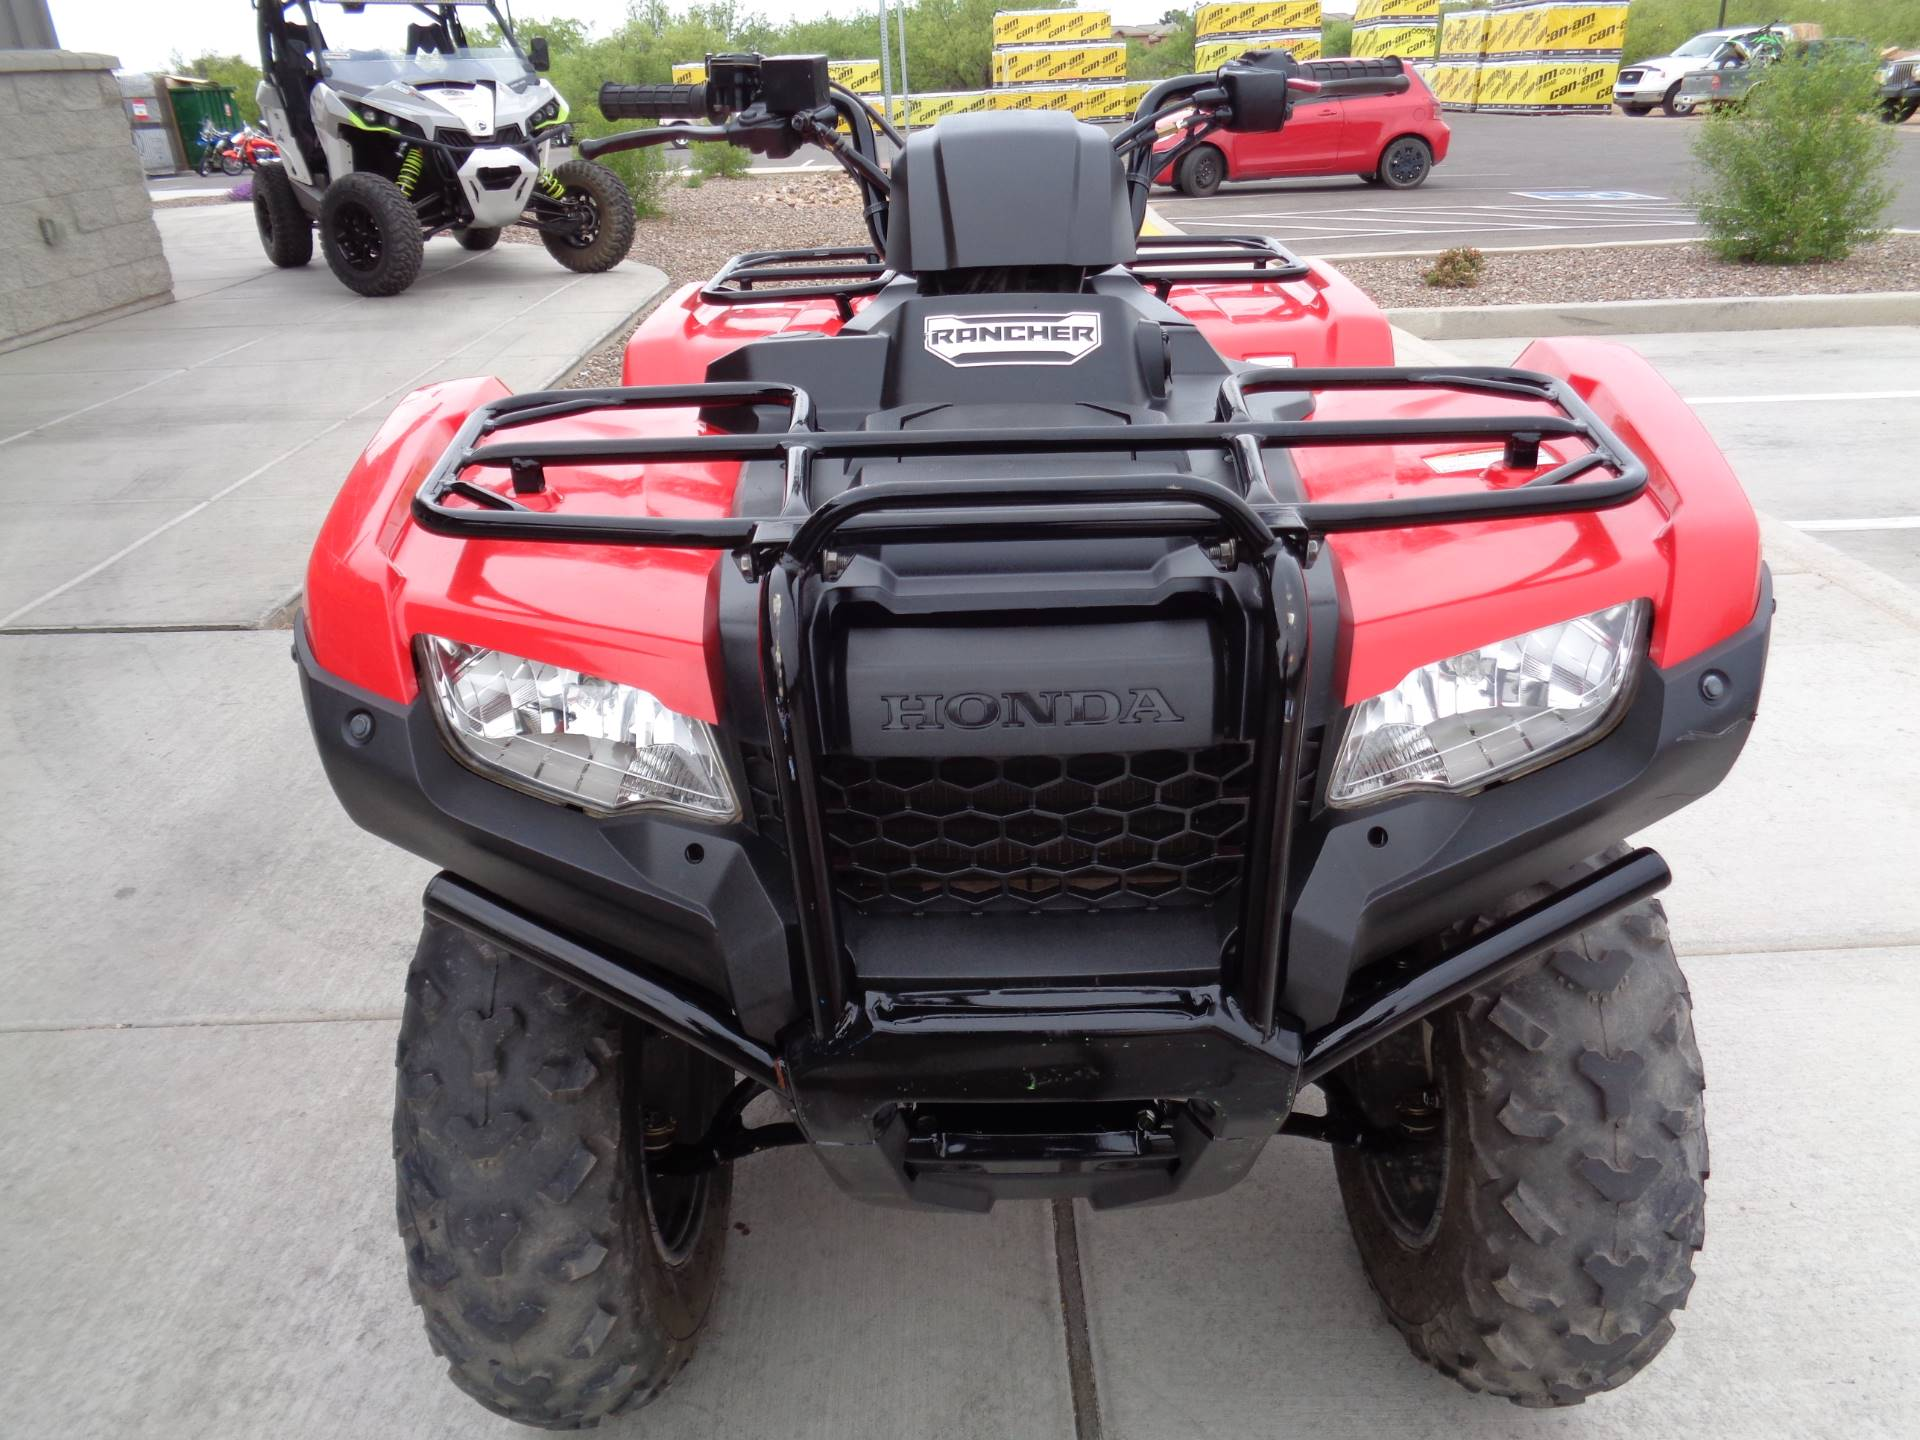 2016 Honda FourTrax Rancher in Sierra Vista, Arizona - Photo 3